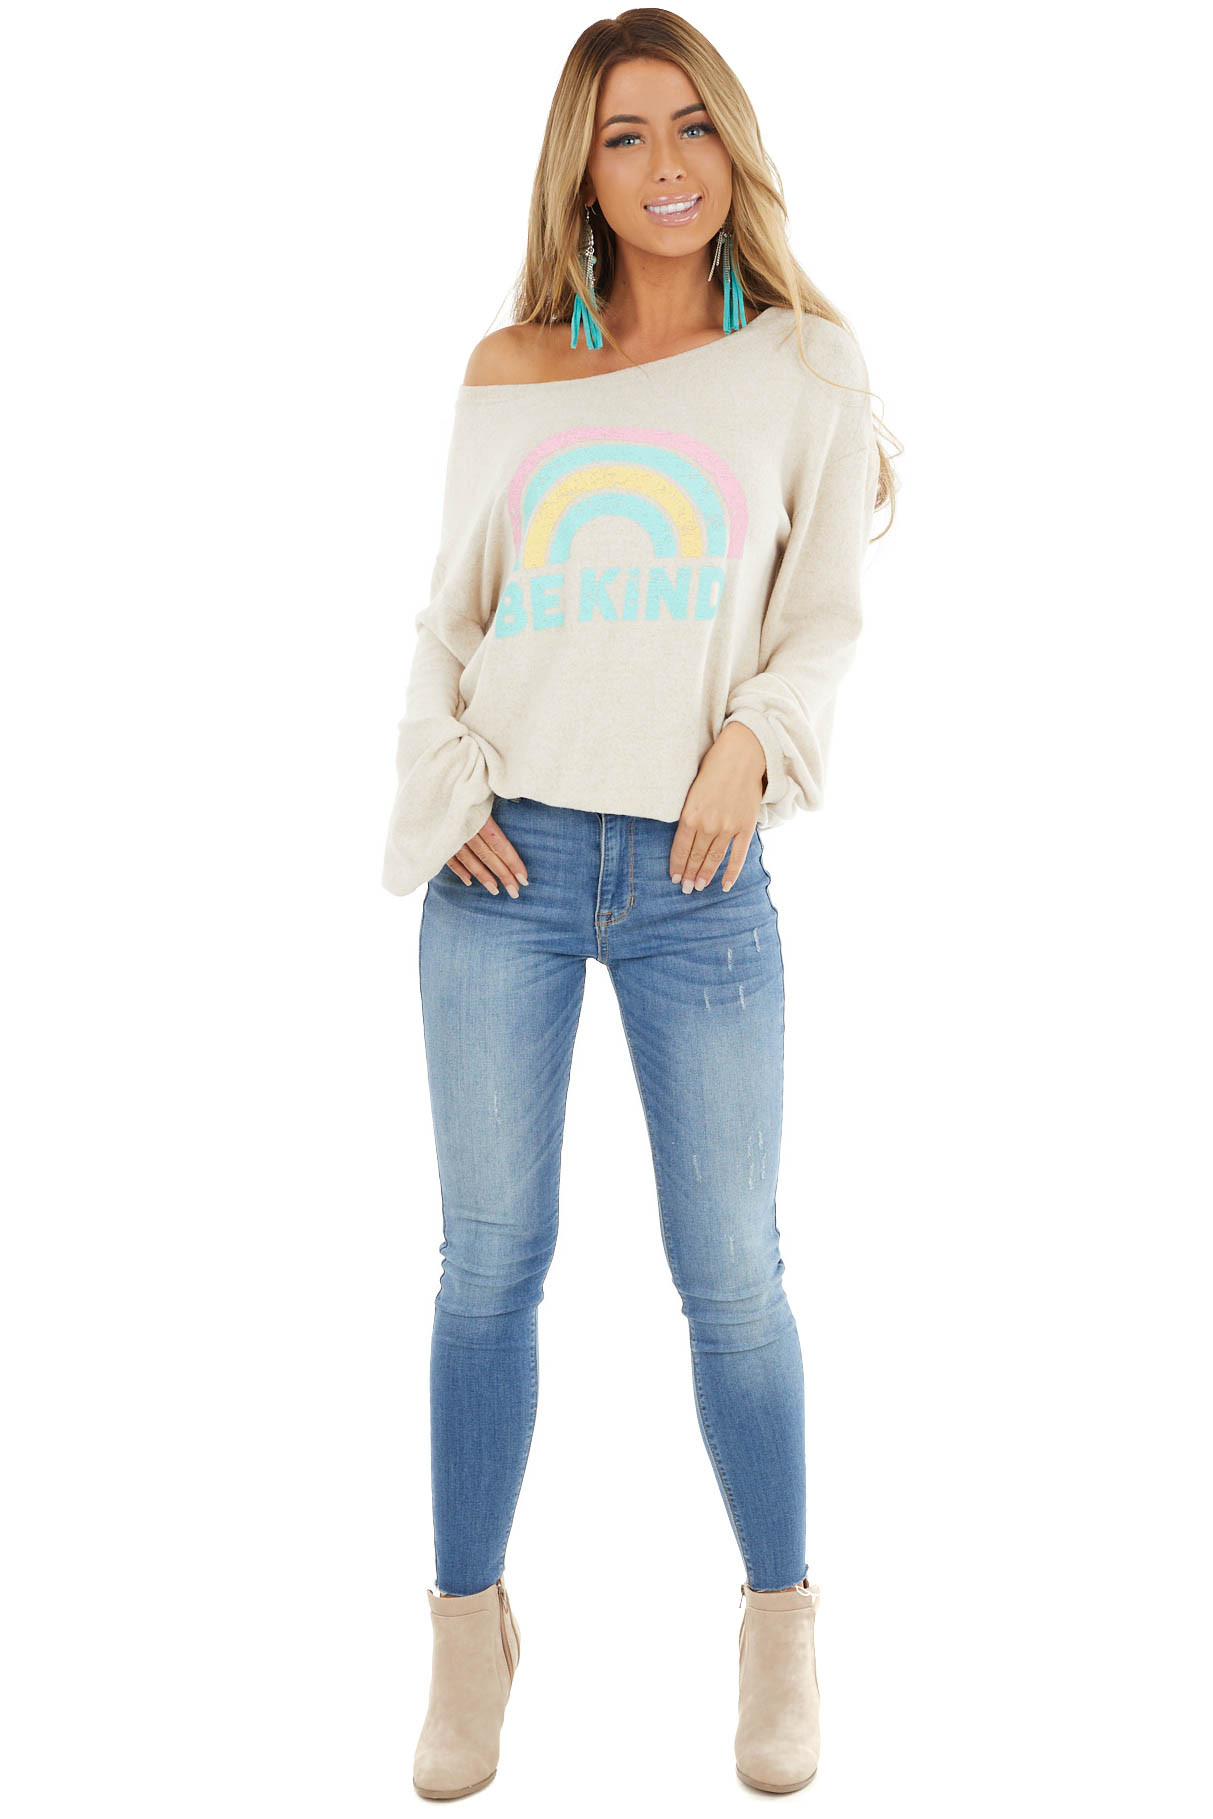 Heathered Oatmeal Soft Long Sleeve 'Be Kind' Graphic Top